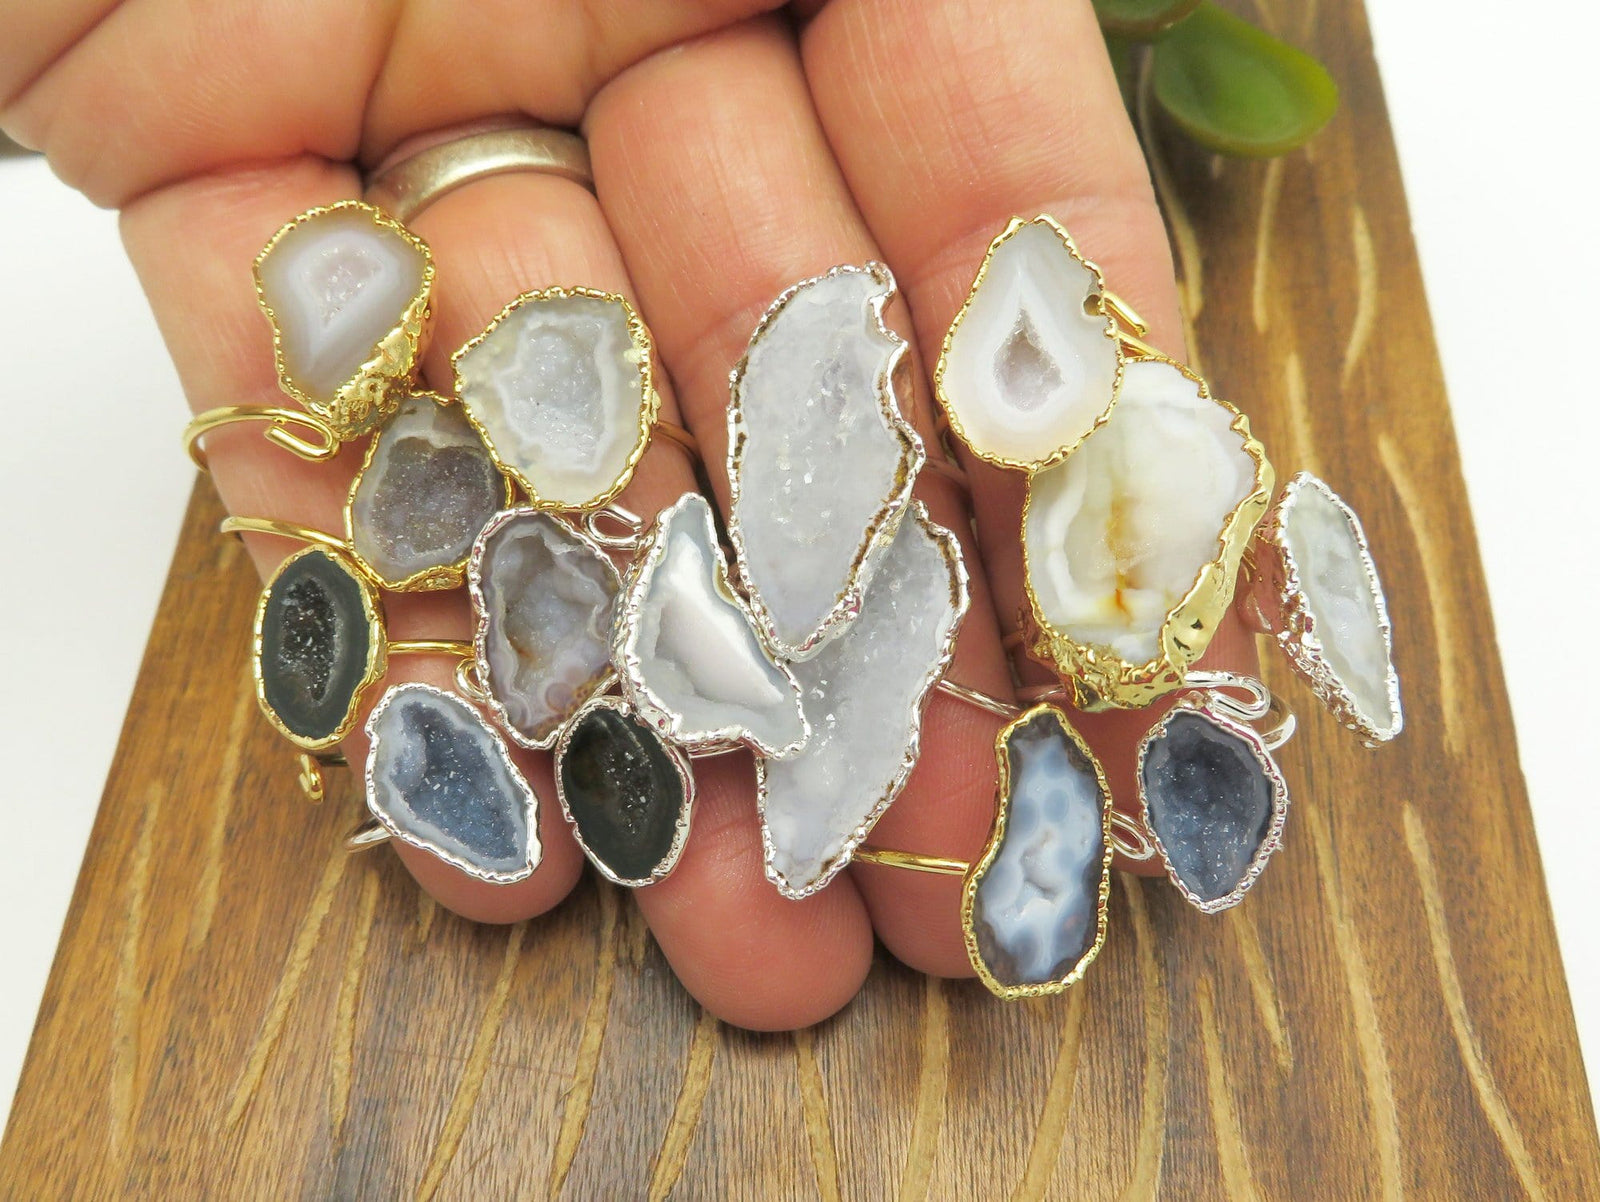 Geode Ring Adjustable - Mexican Geode Rings (RK117B2)